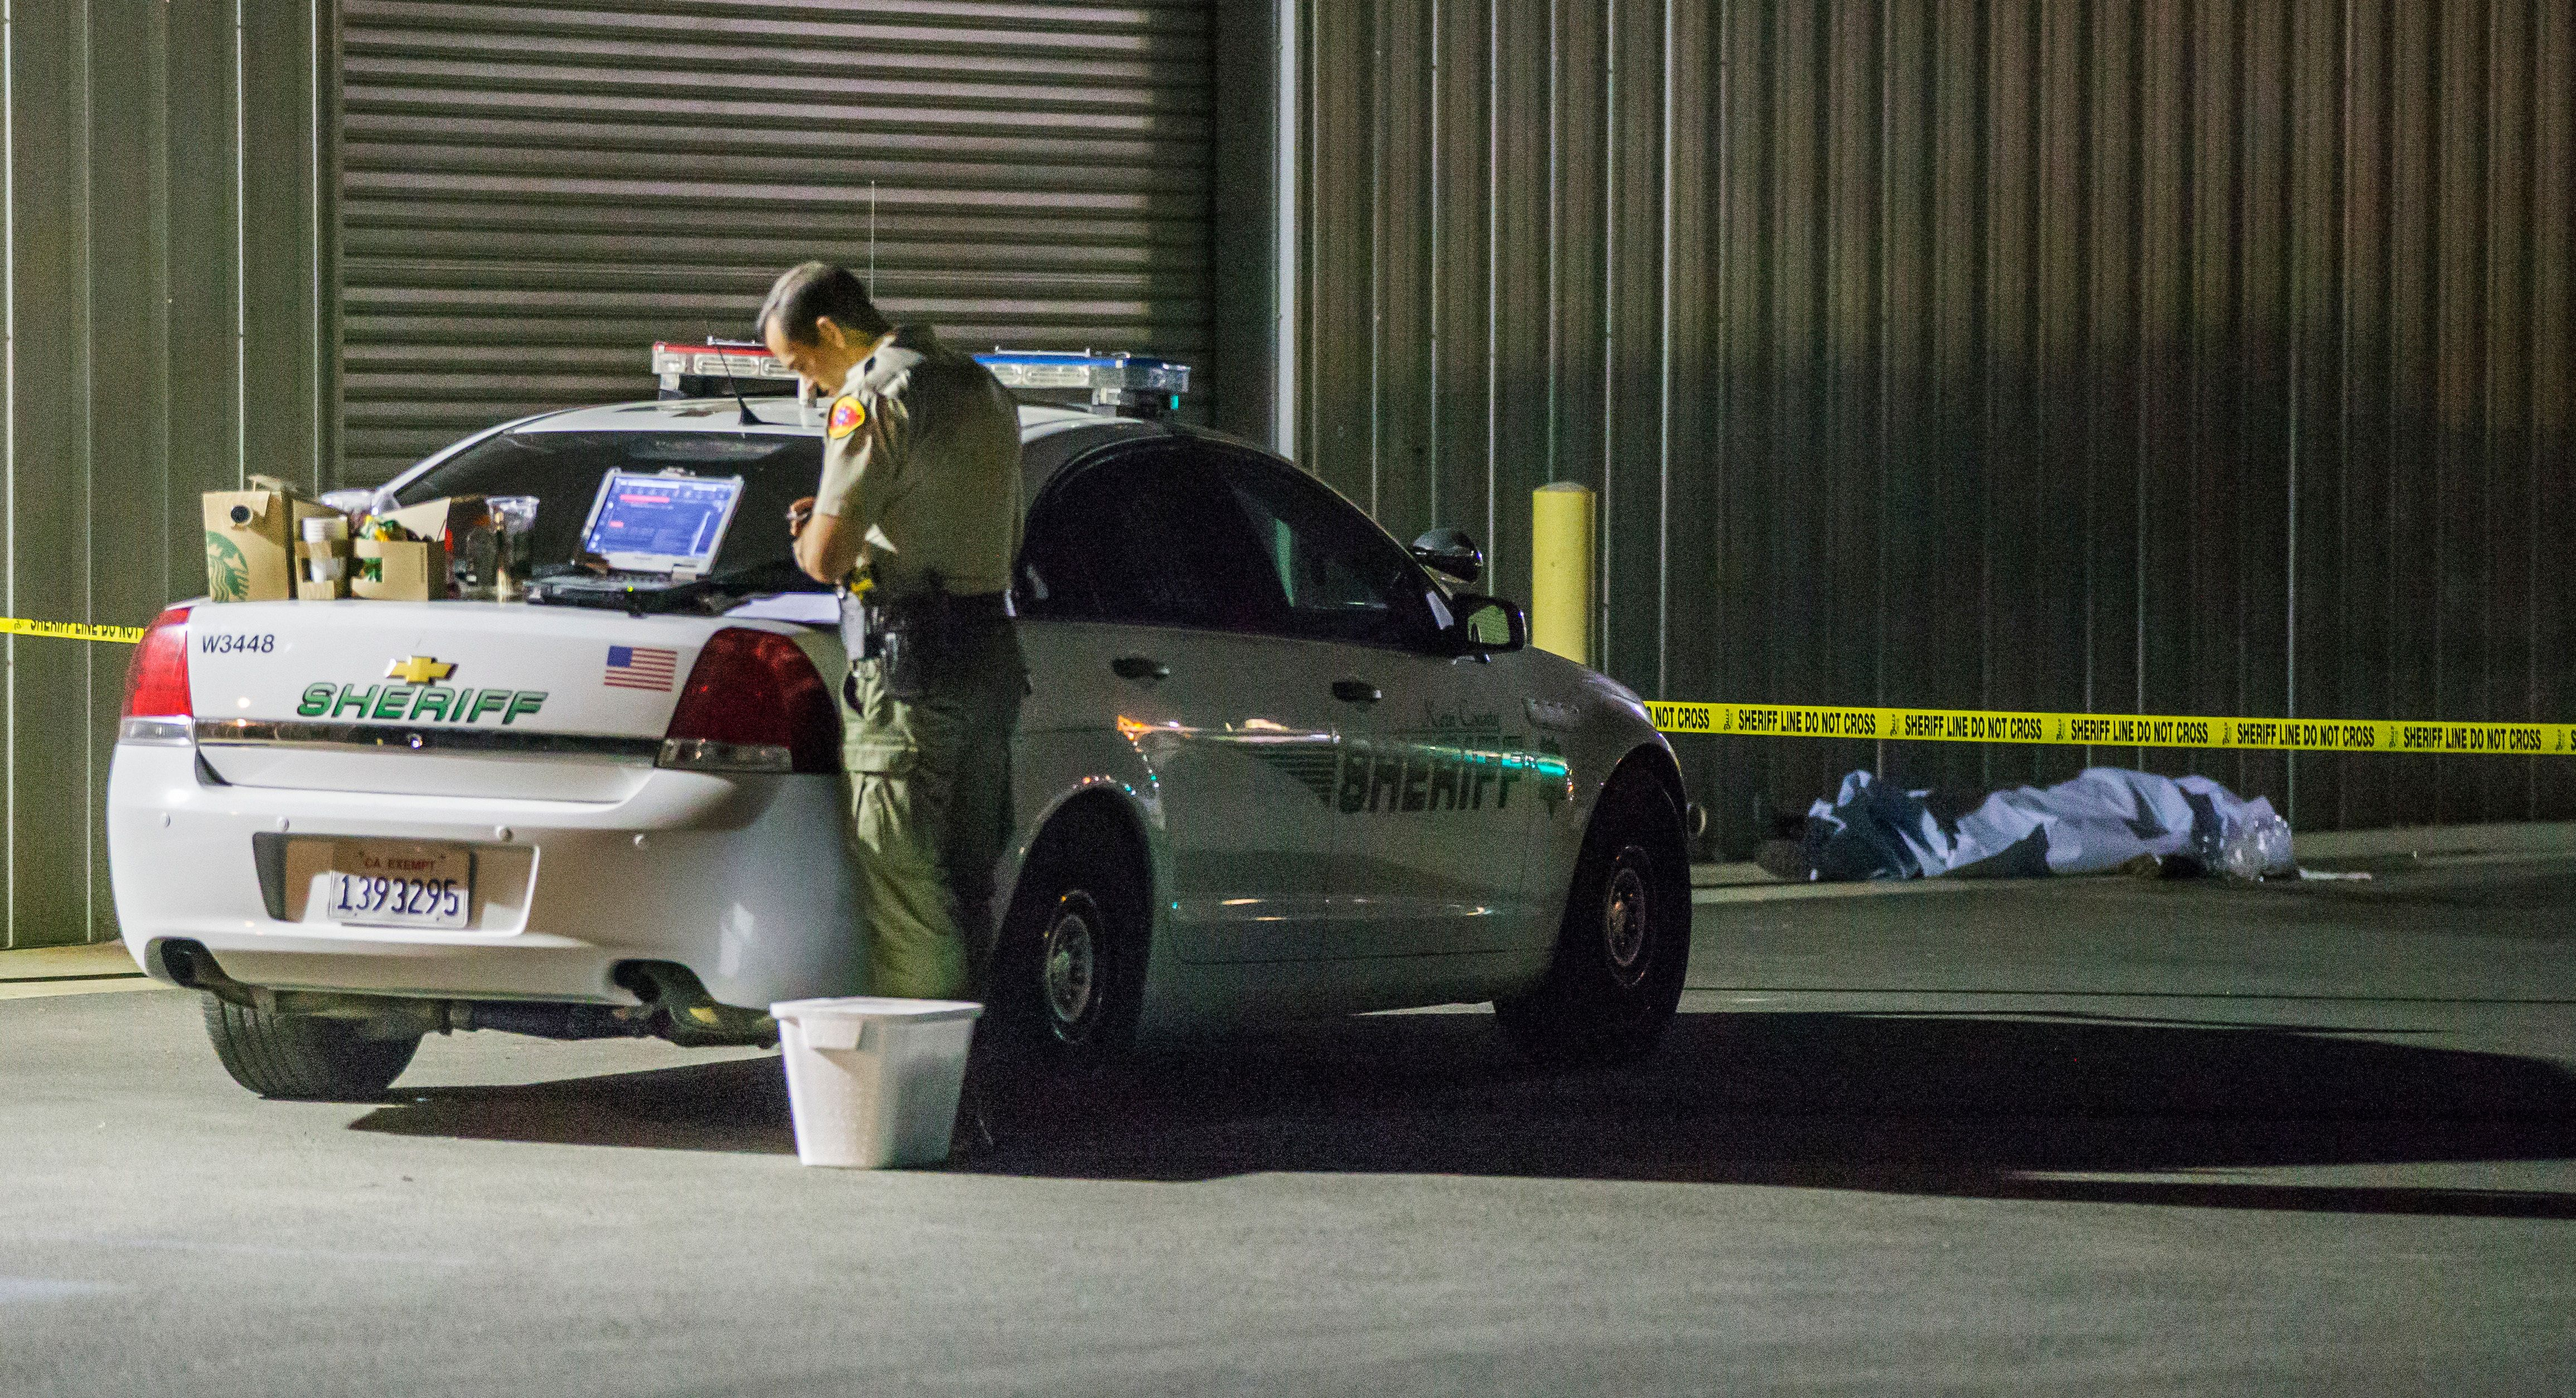 A Kern County sheriffs deputy stands near an area where a shooting victim lies Wednesday Sept 12 2018 in Bakersfield Calif A gunman killed five people including his wife before turning the gun on himself authorities said